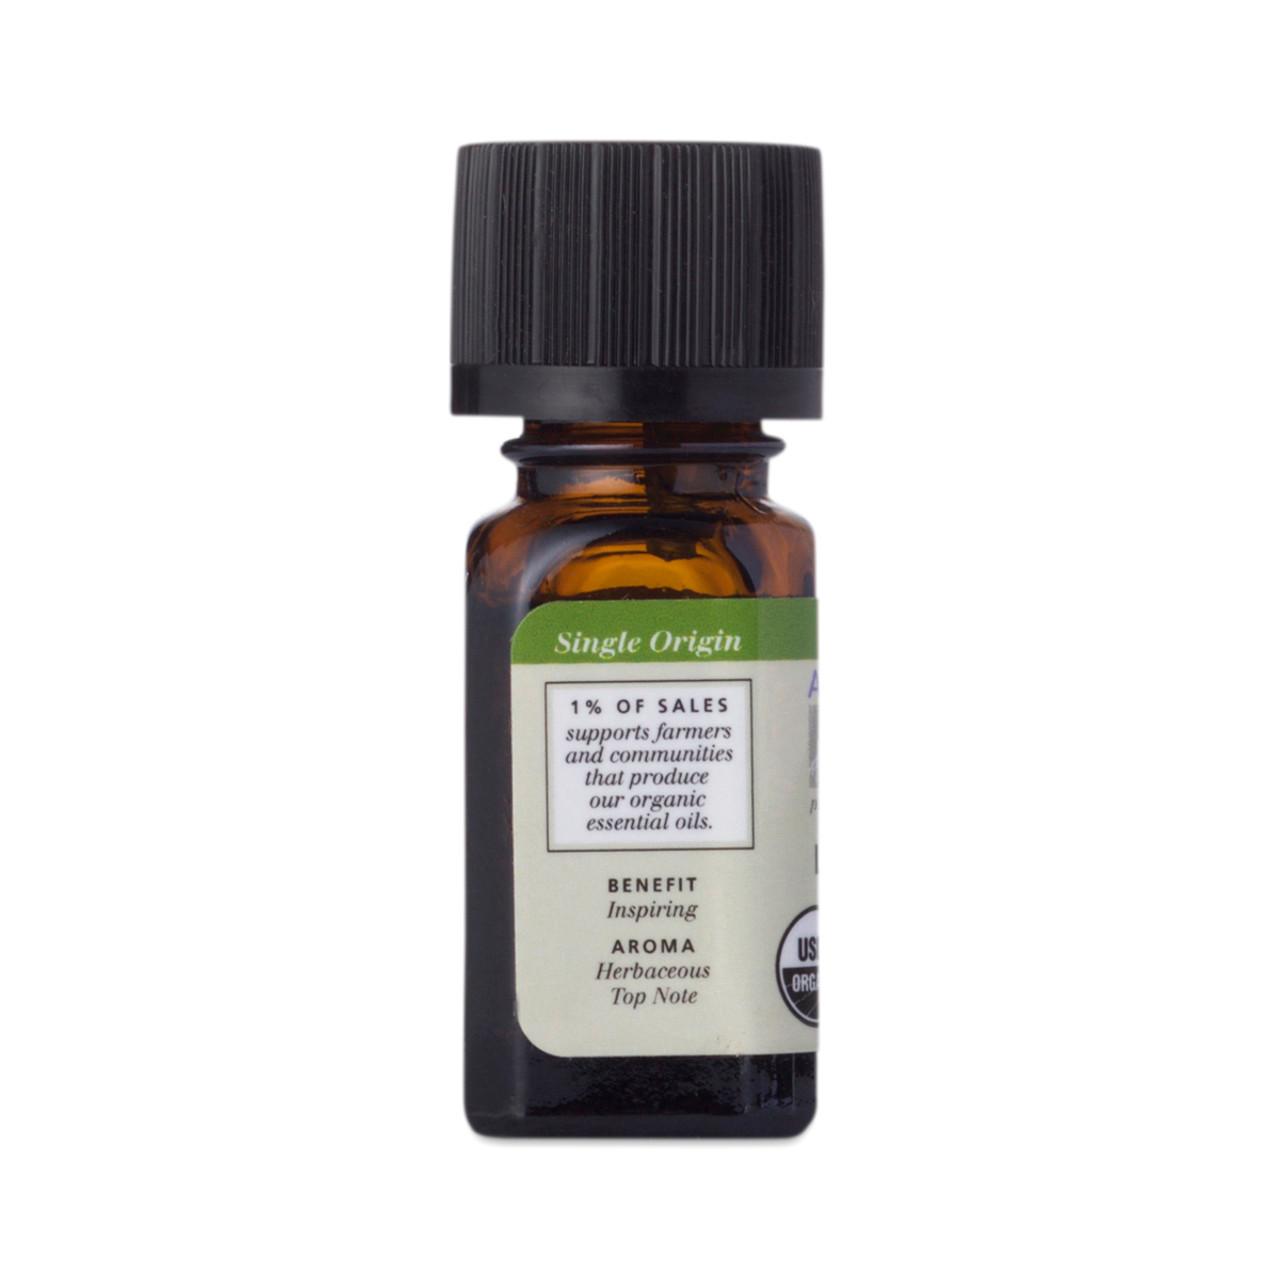 Lemongrass essential oil - bee swarm attractant